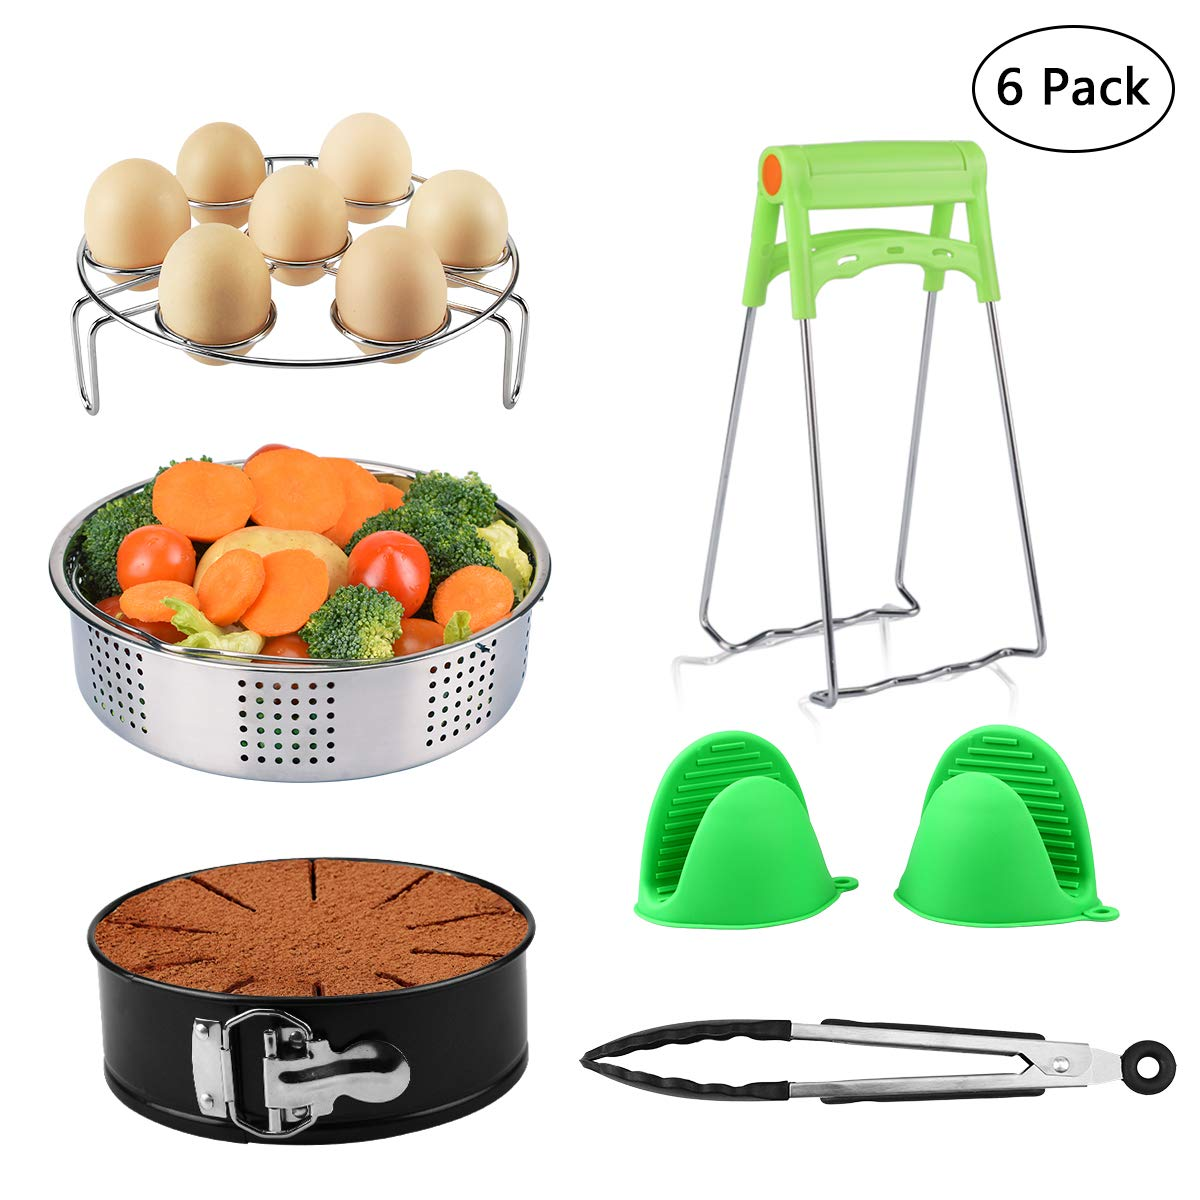 Instant Pot Accessories Set Fits 5, 6, 8 Qt Instant Pot Pressure Cooker with Steamer Basket, Egg Steamer Rack, Non-stick Springform Pan, 1 Pair Oven Mitts, Kitchen Tongs 6 Pieces Libay